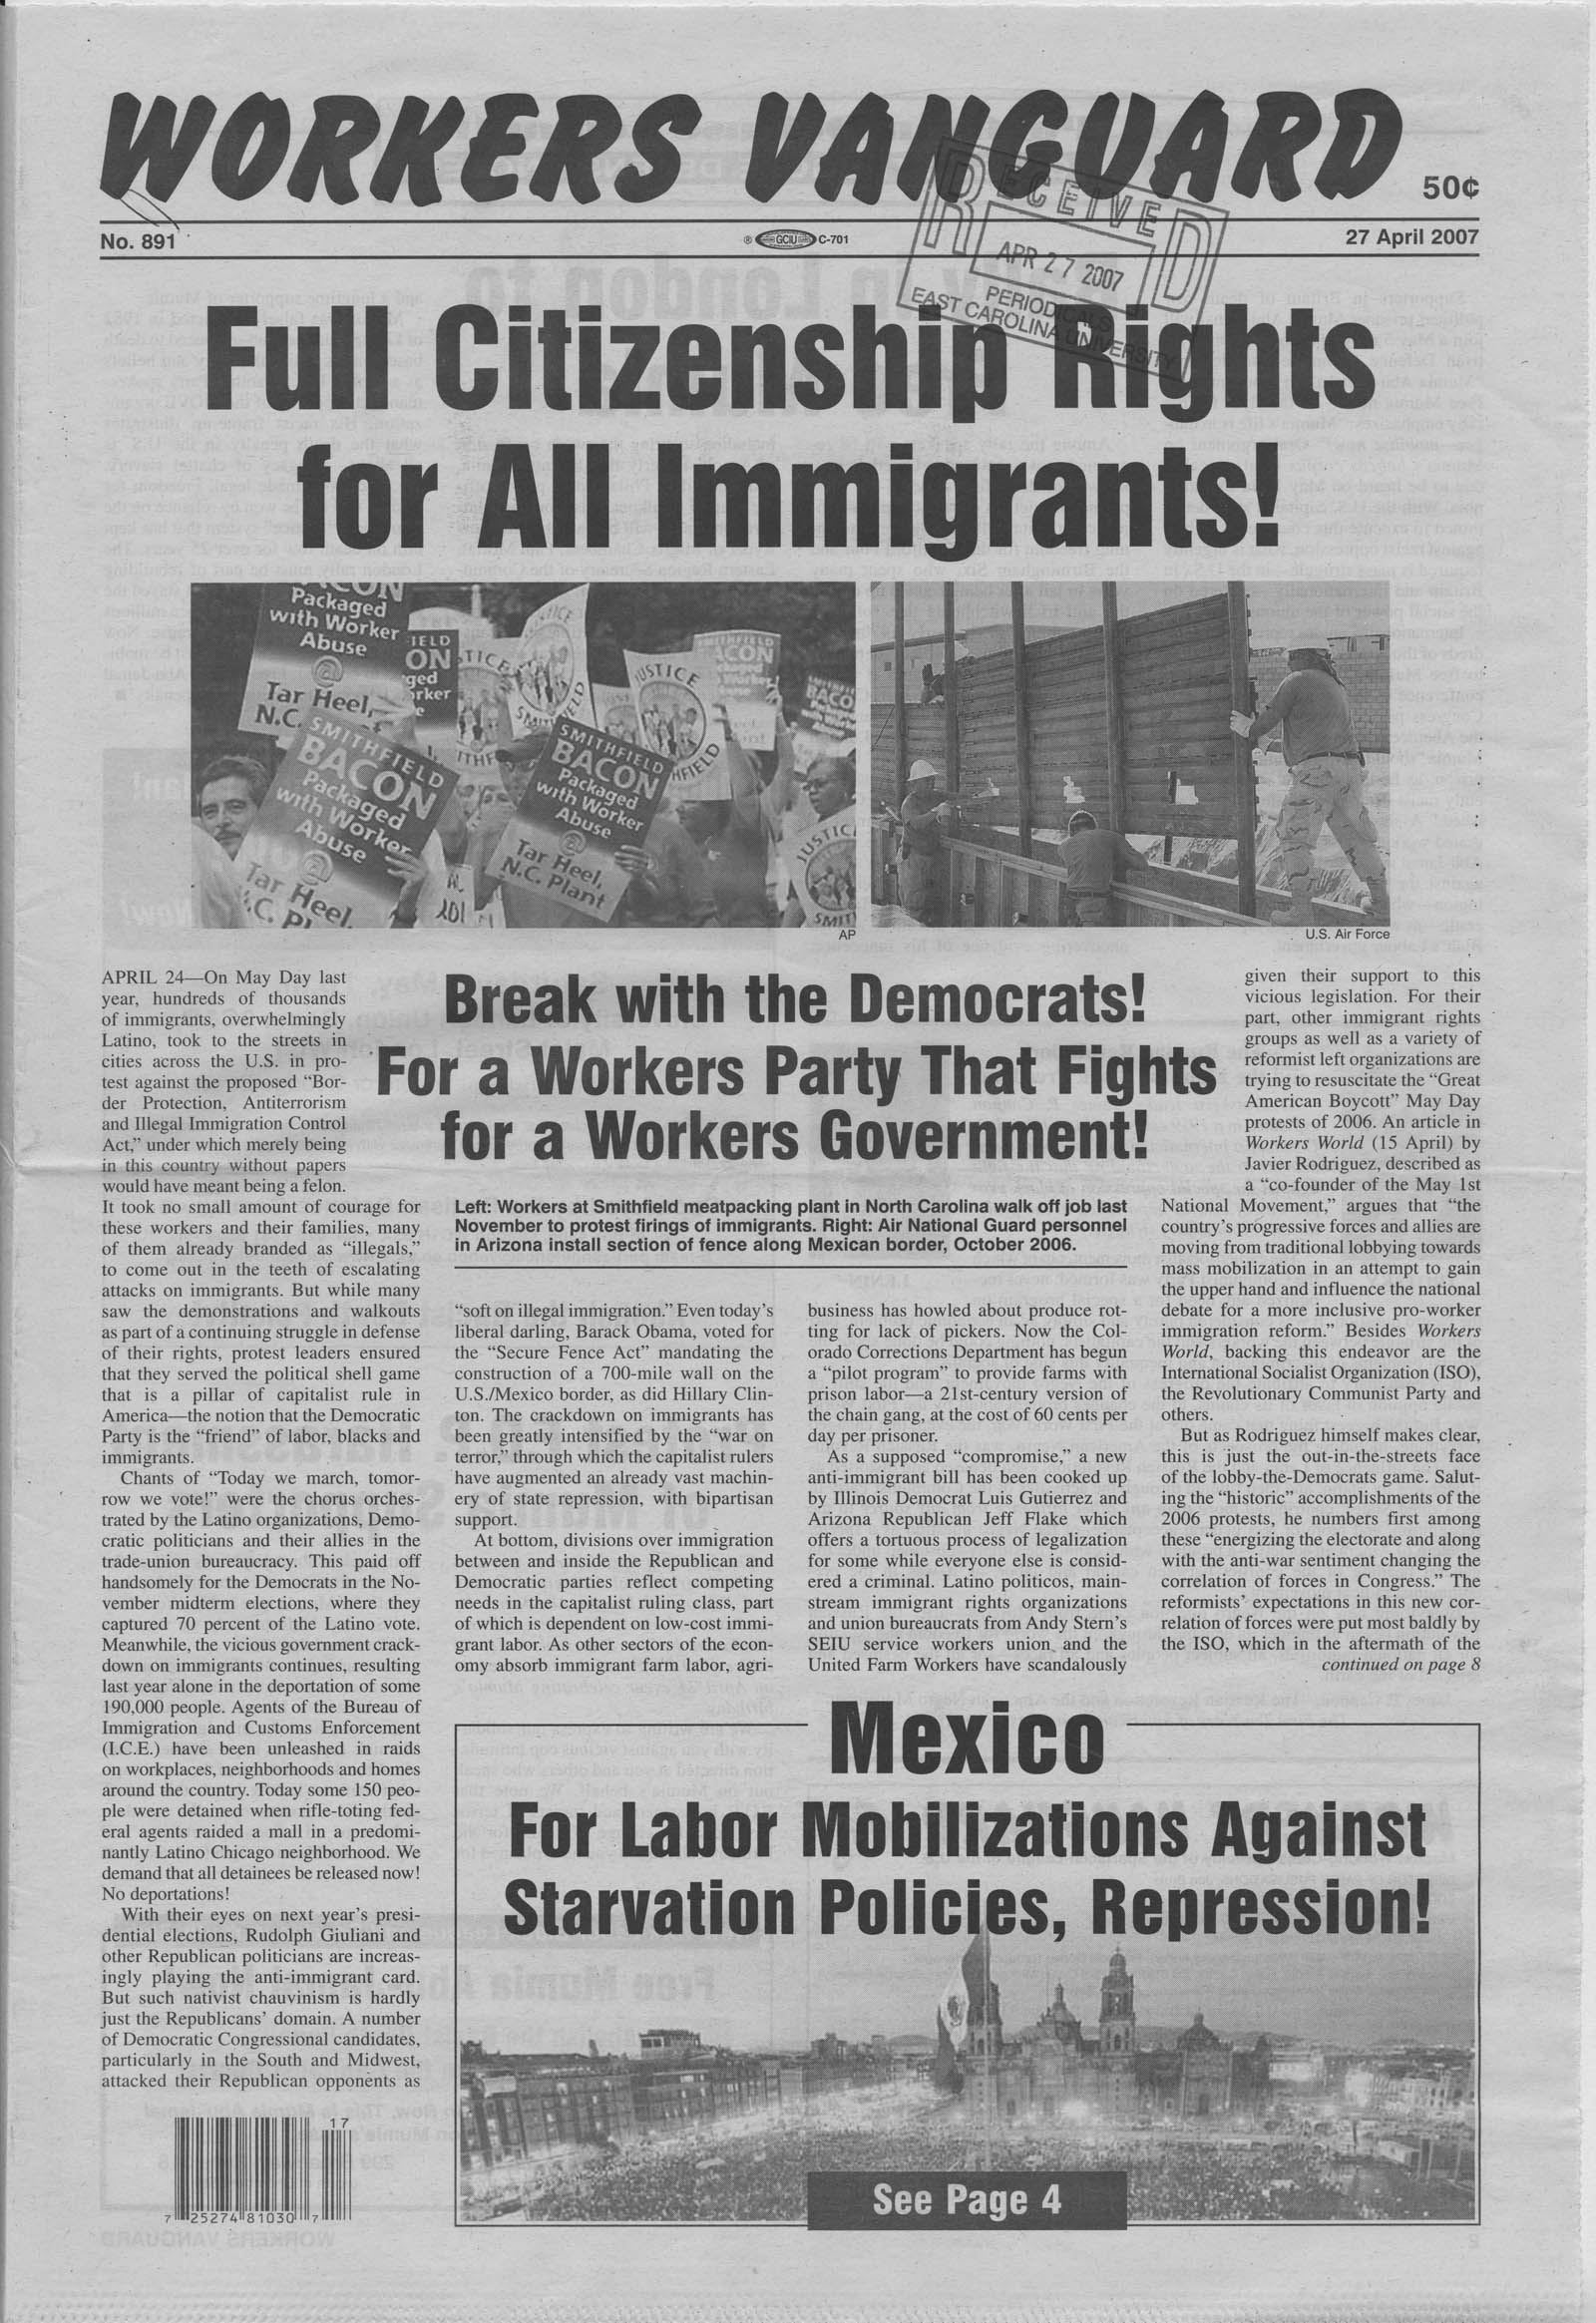 Workers vanguard front page